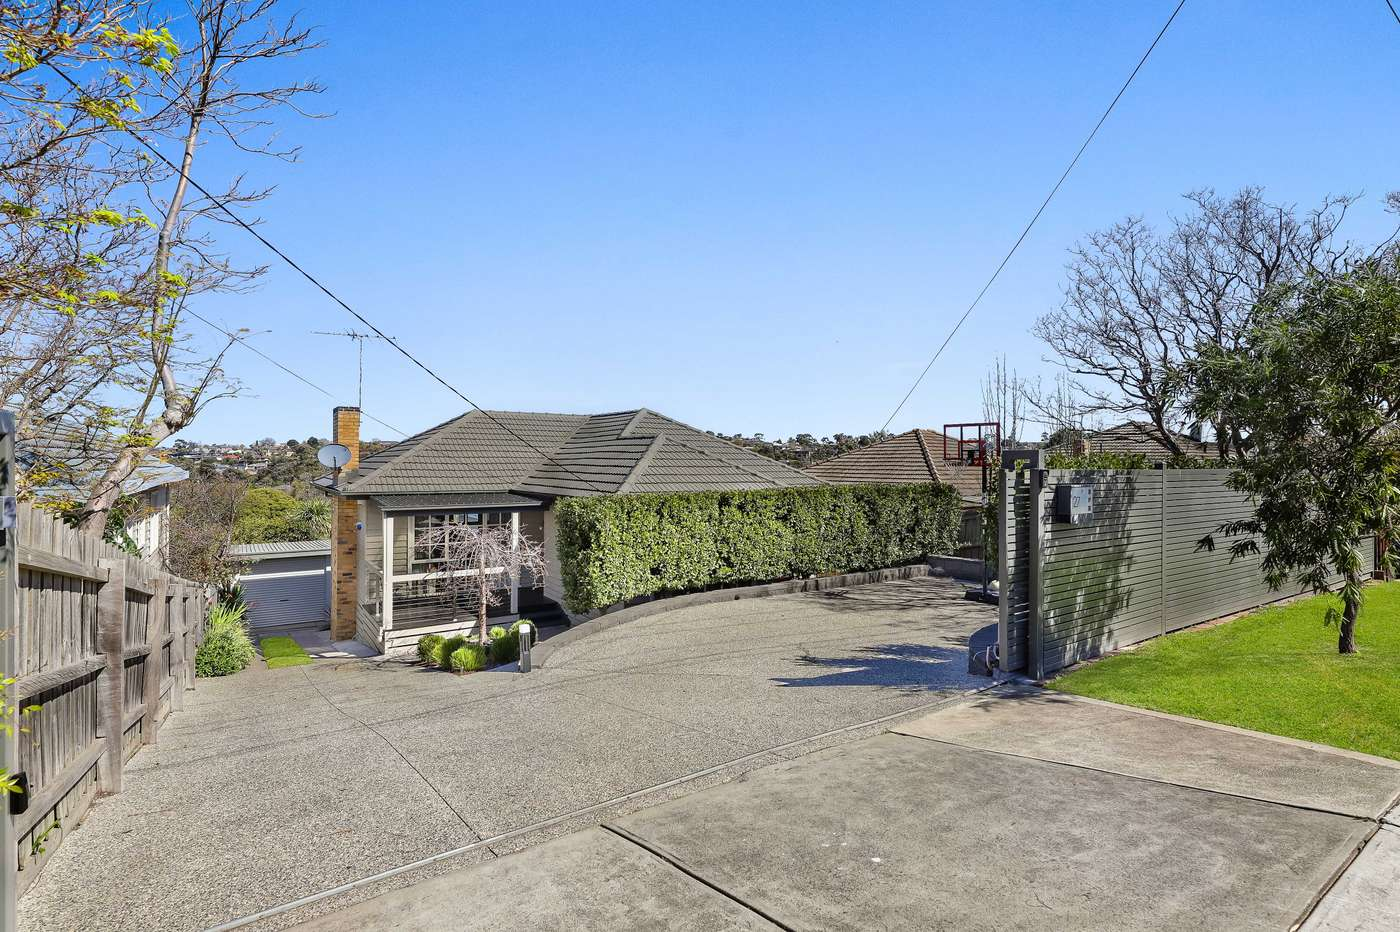 Main view of Homely house listing, 27 Vincent Street, Oak Park, VIC 3046